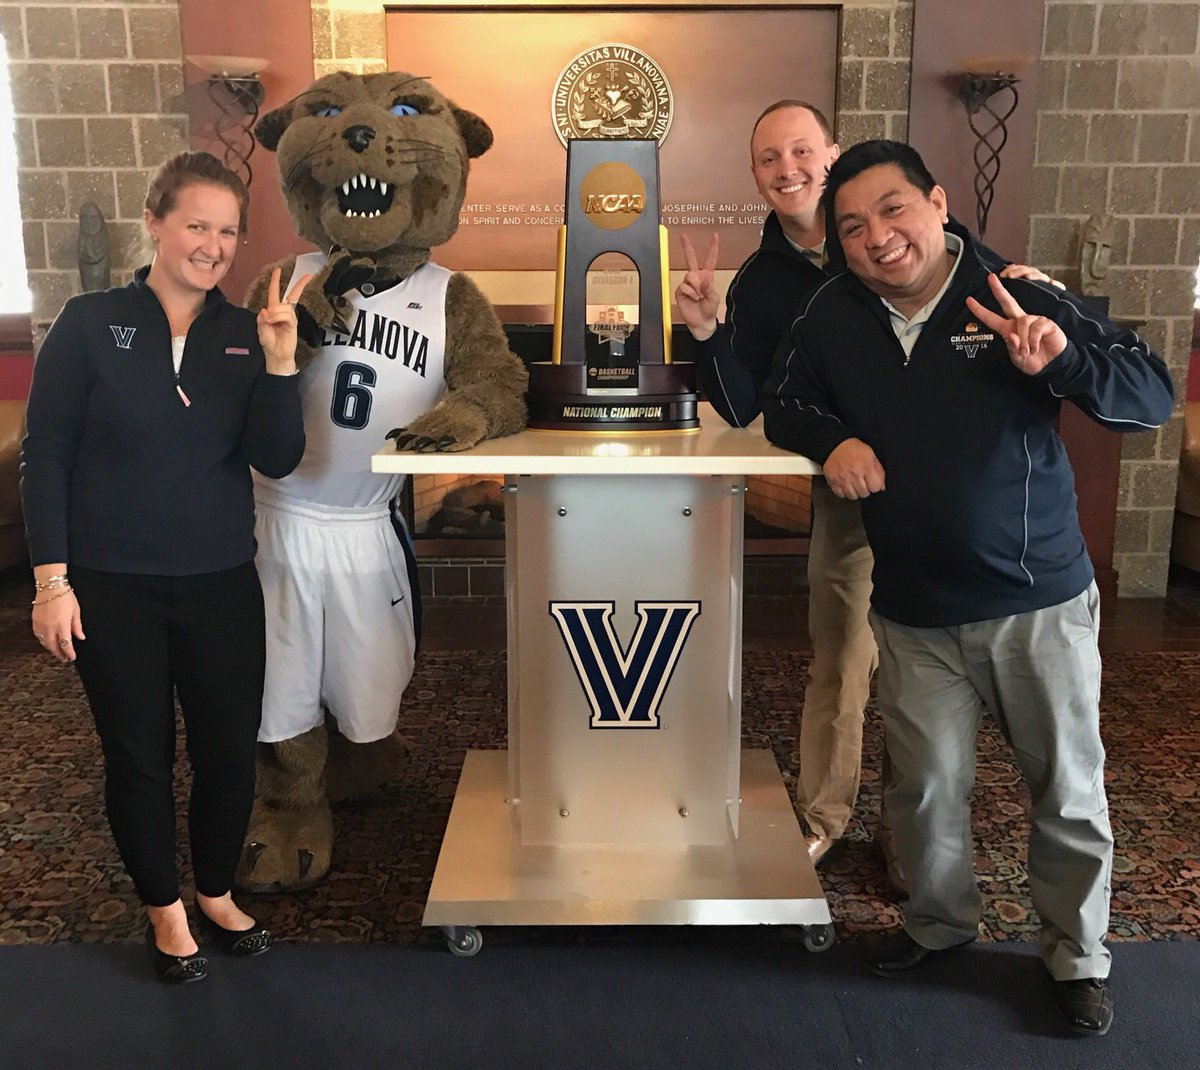 villanova essay topics villanova admission staff is thrilled to take a picture the trophy and willdcatvupic twitter com bas eorbdr